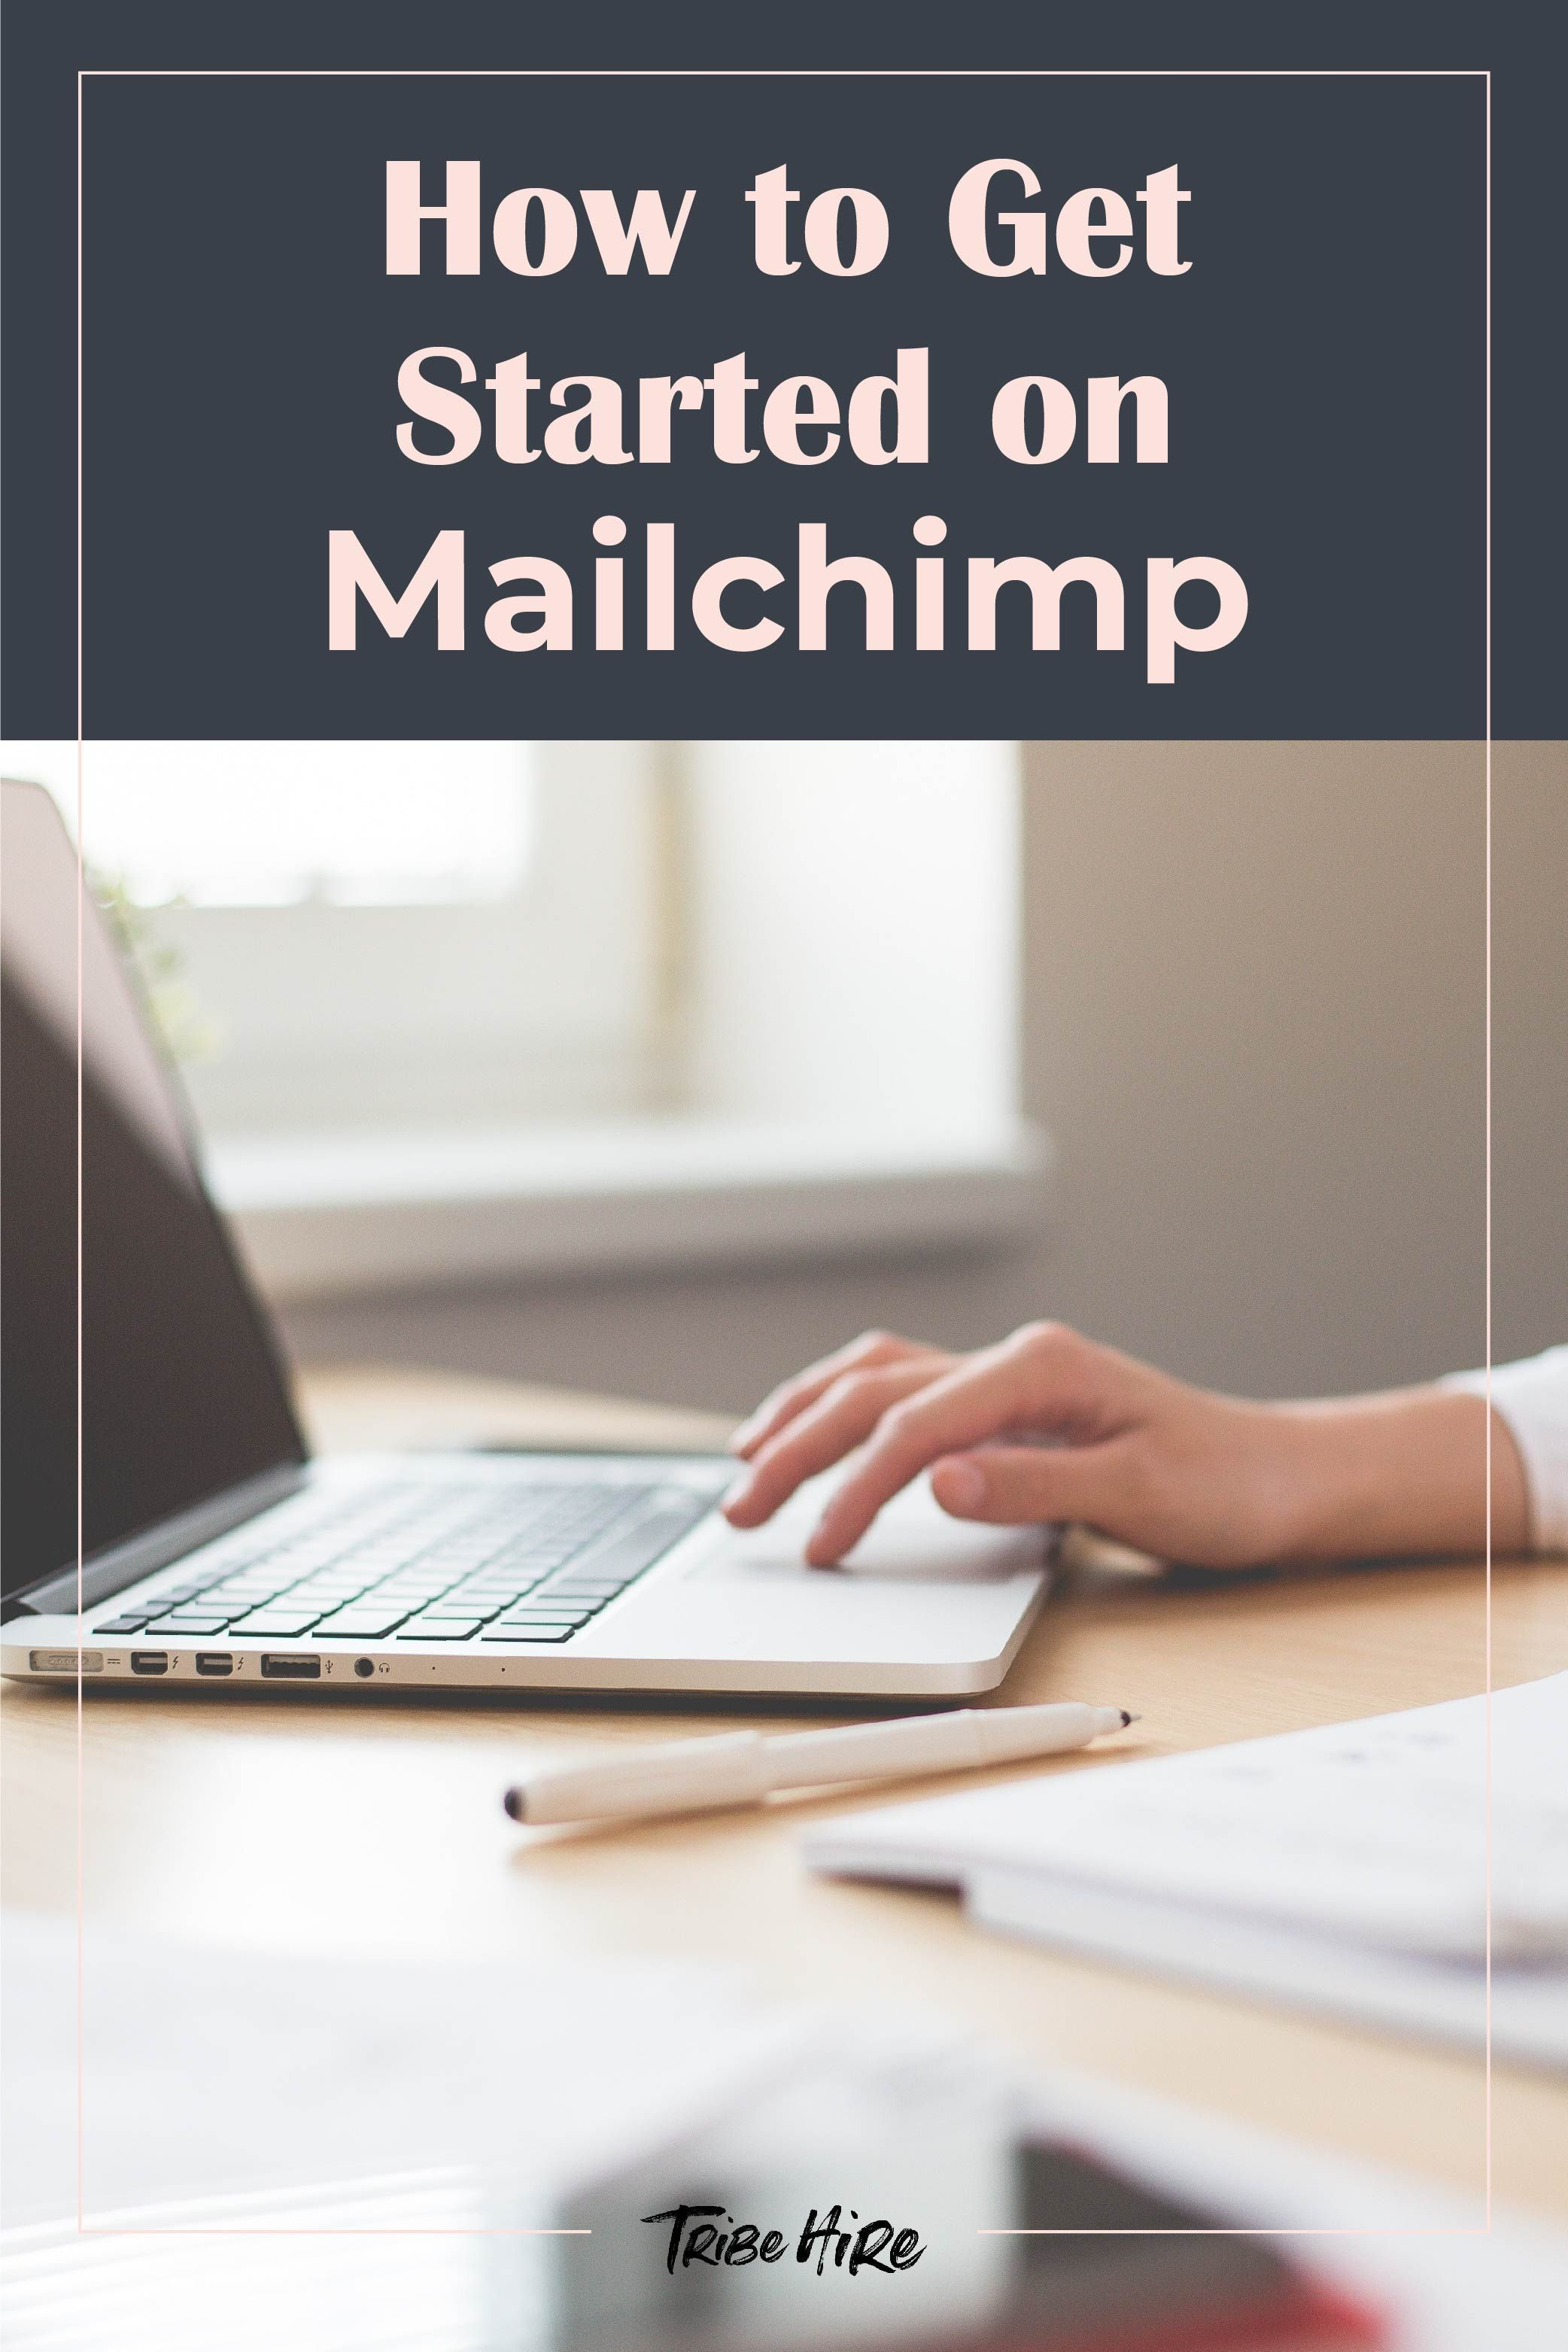 How To Get Started On Mailchimp In 2020 Digital Marketing Manager Mailchimp Making Money On Etsy